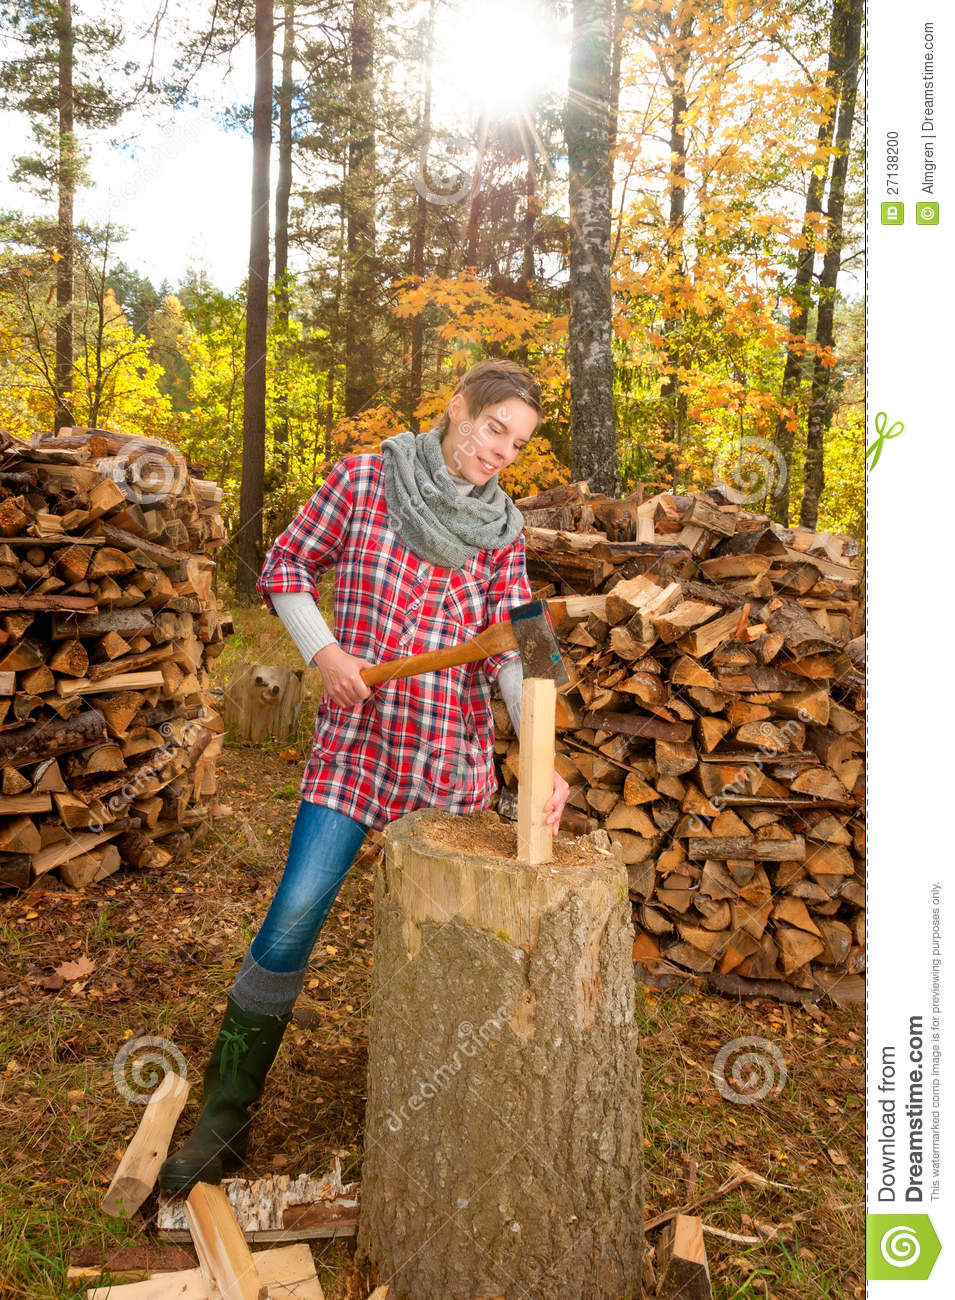 nenets woman cutting firewood - photo #37